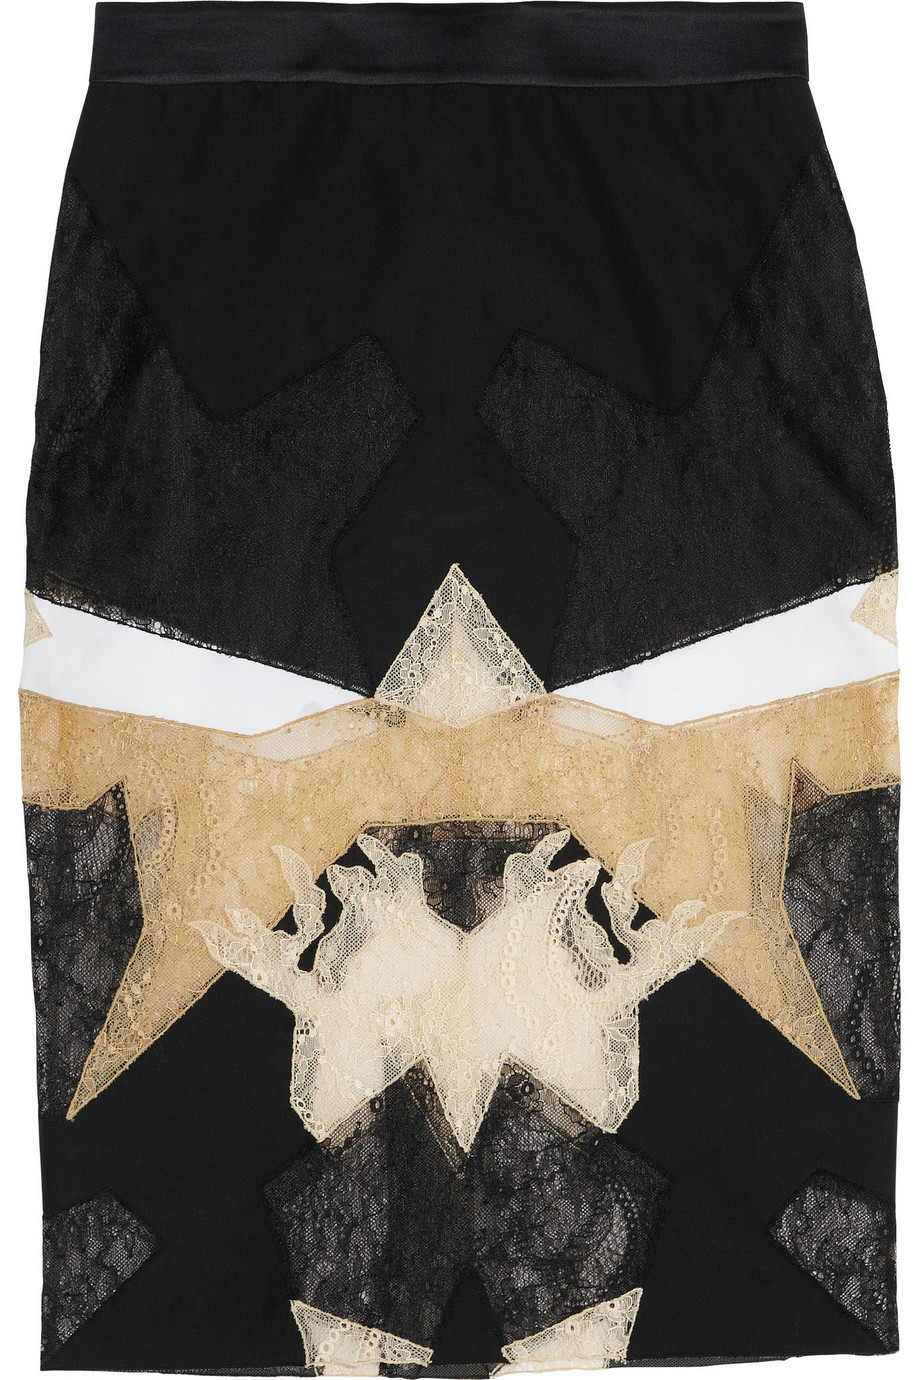 Givenchy Black, White and Beige Patchwork Lace Skirt, Size: 36